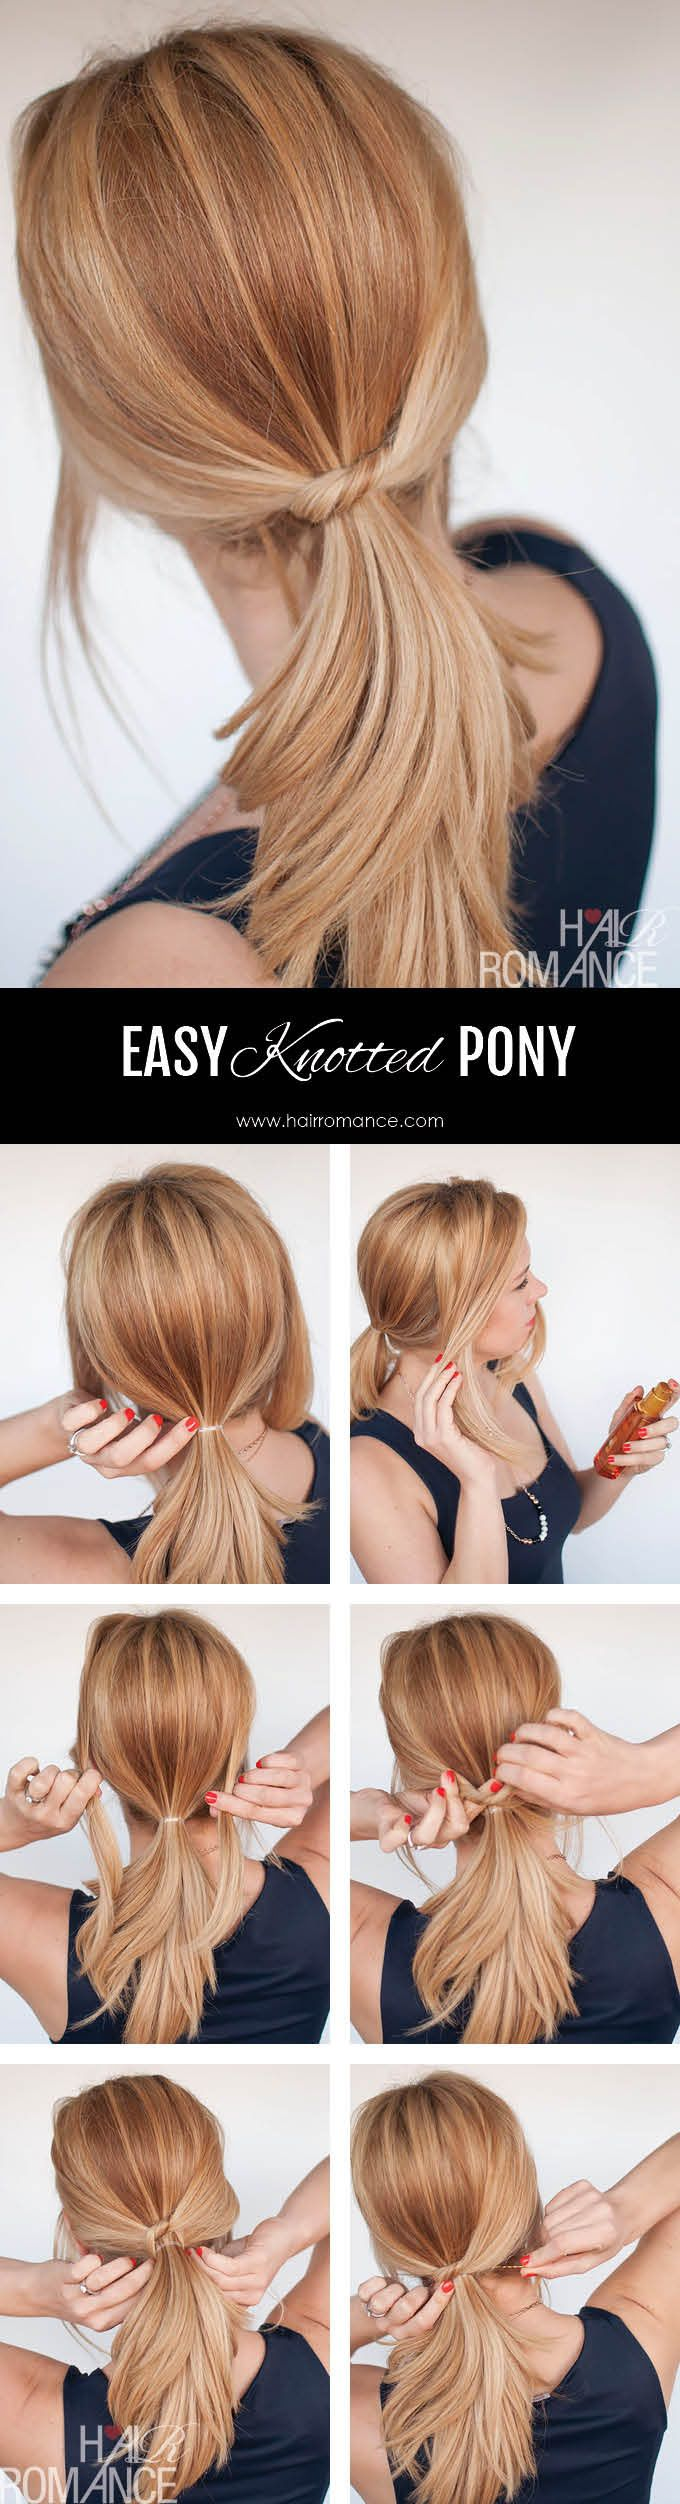 Hair Romance - The easy knotted ponytail tutorial